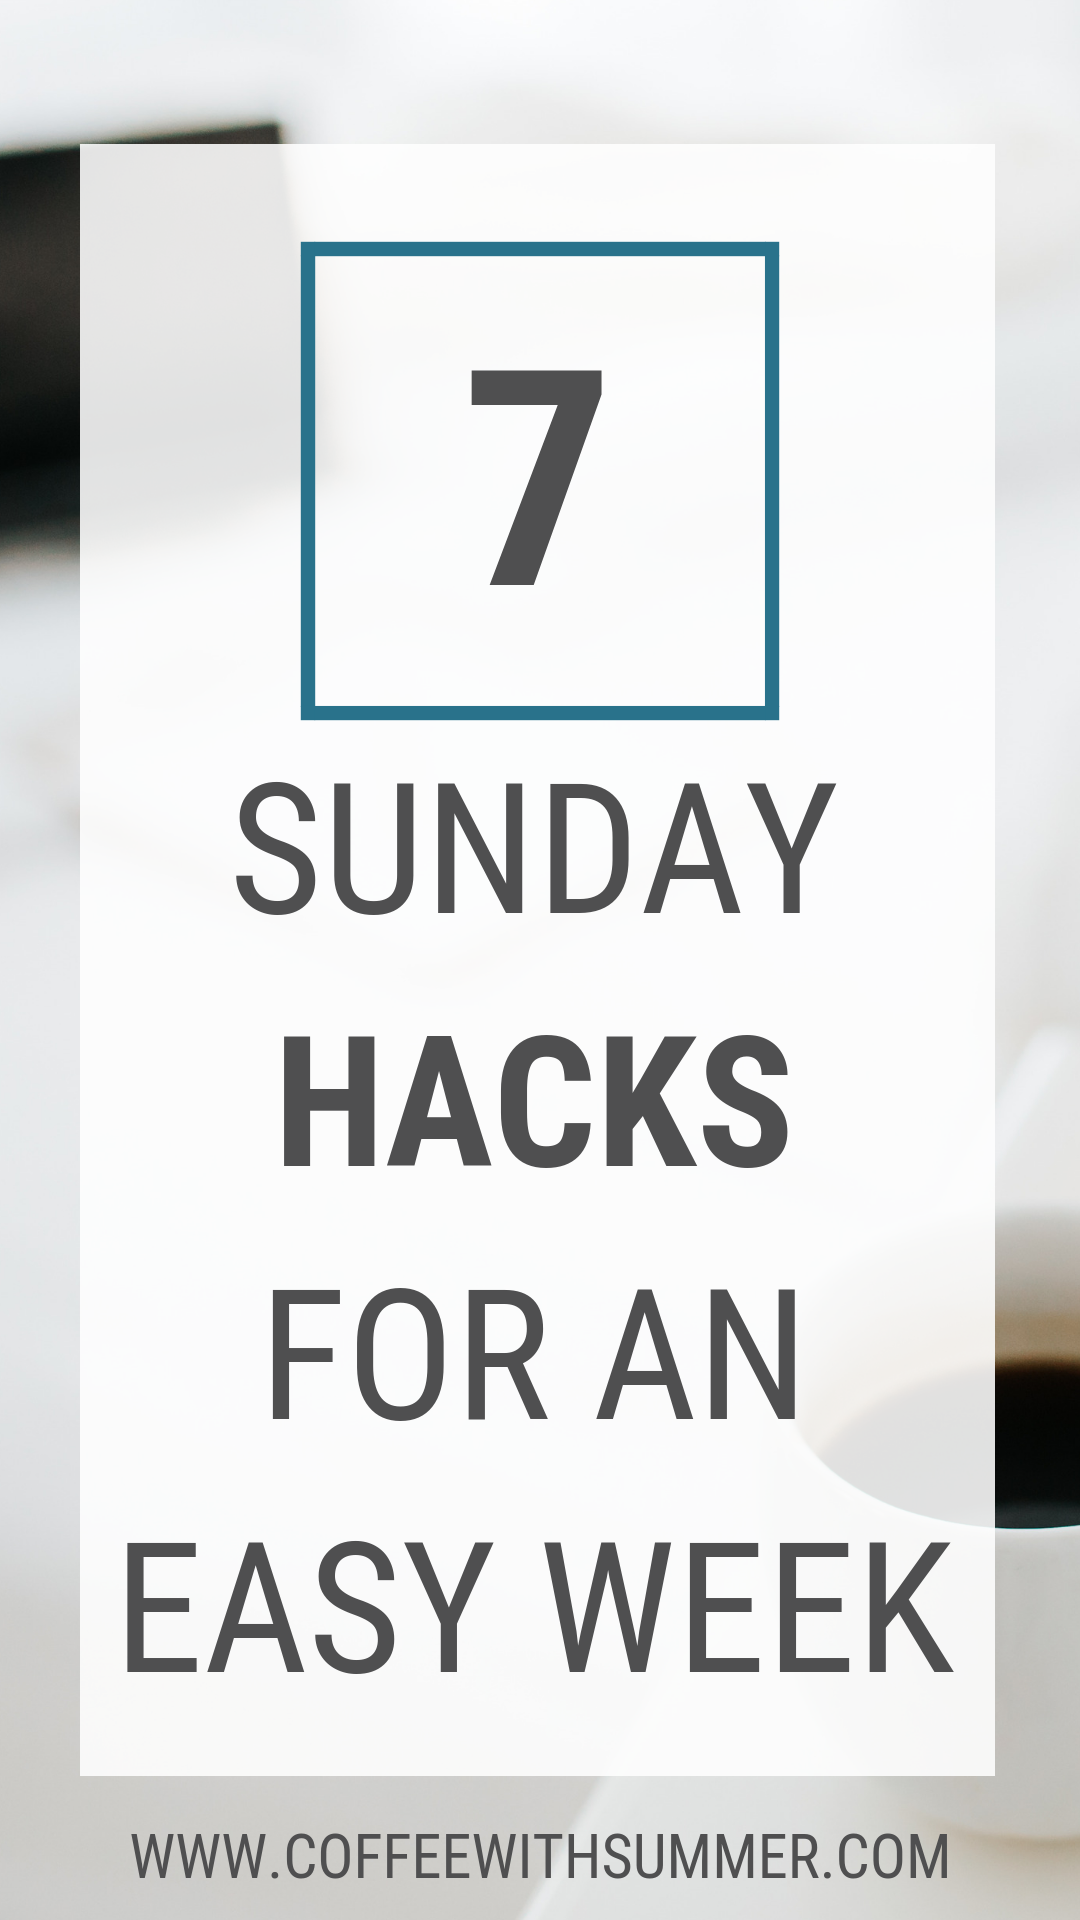 Sunday Hacks For An Easy Week